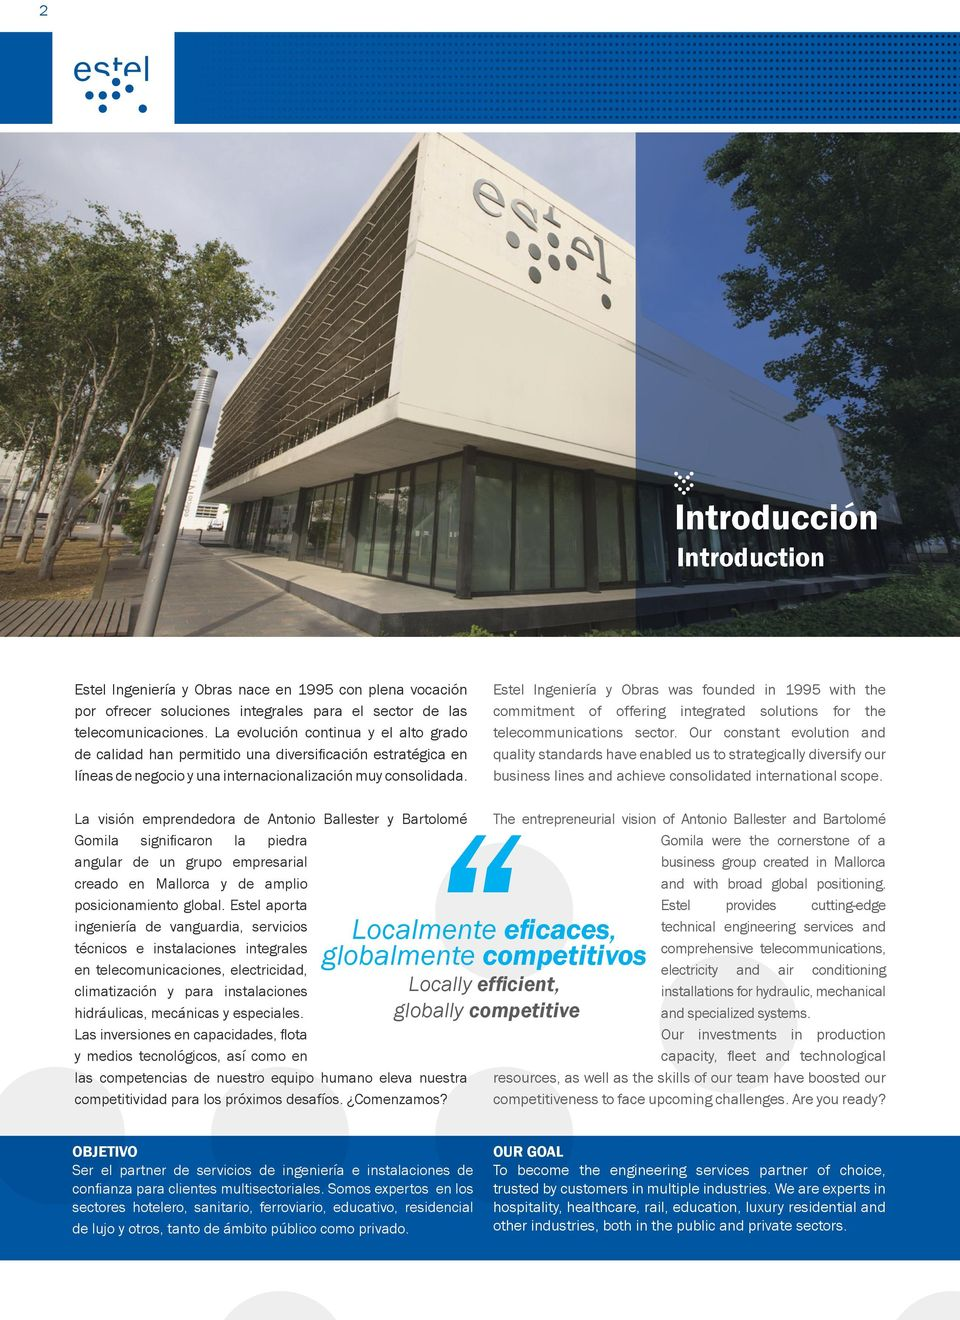 Estel Ingeniería y Obras was founded in 1995 with the commitment of offering integrated solutions for the telecommunications sector.